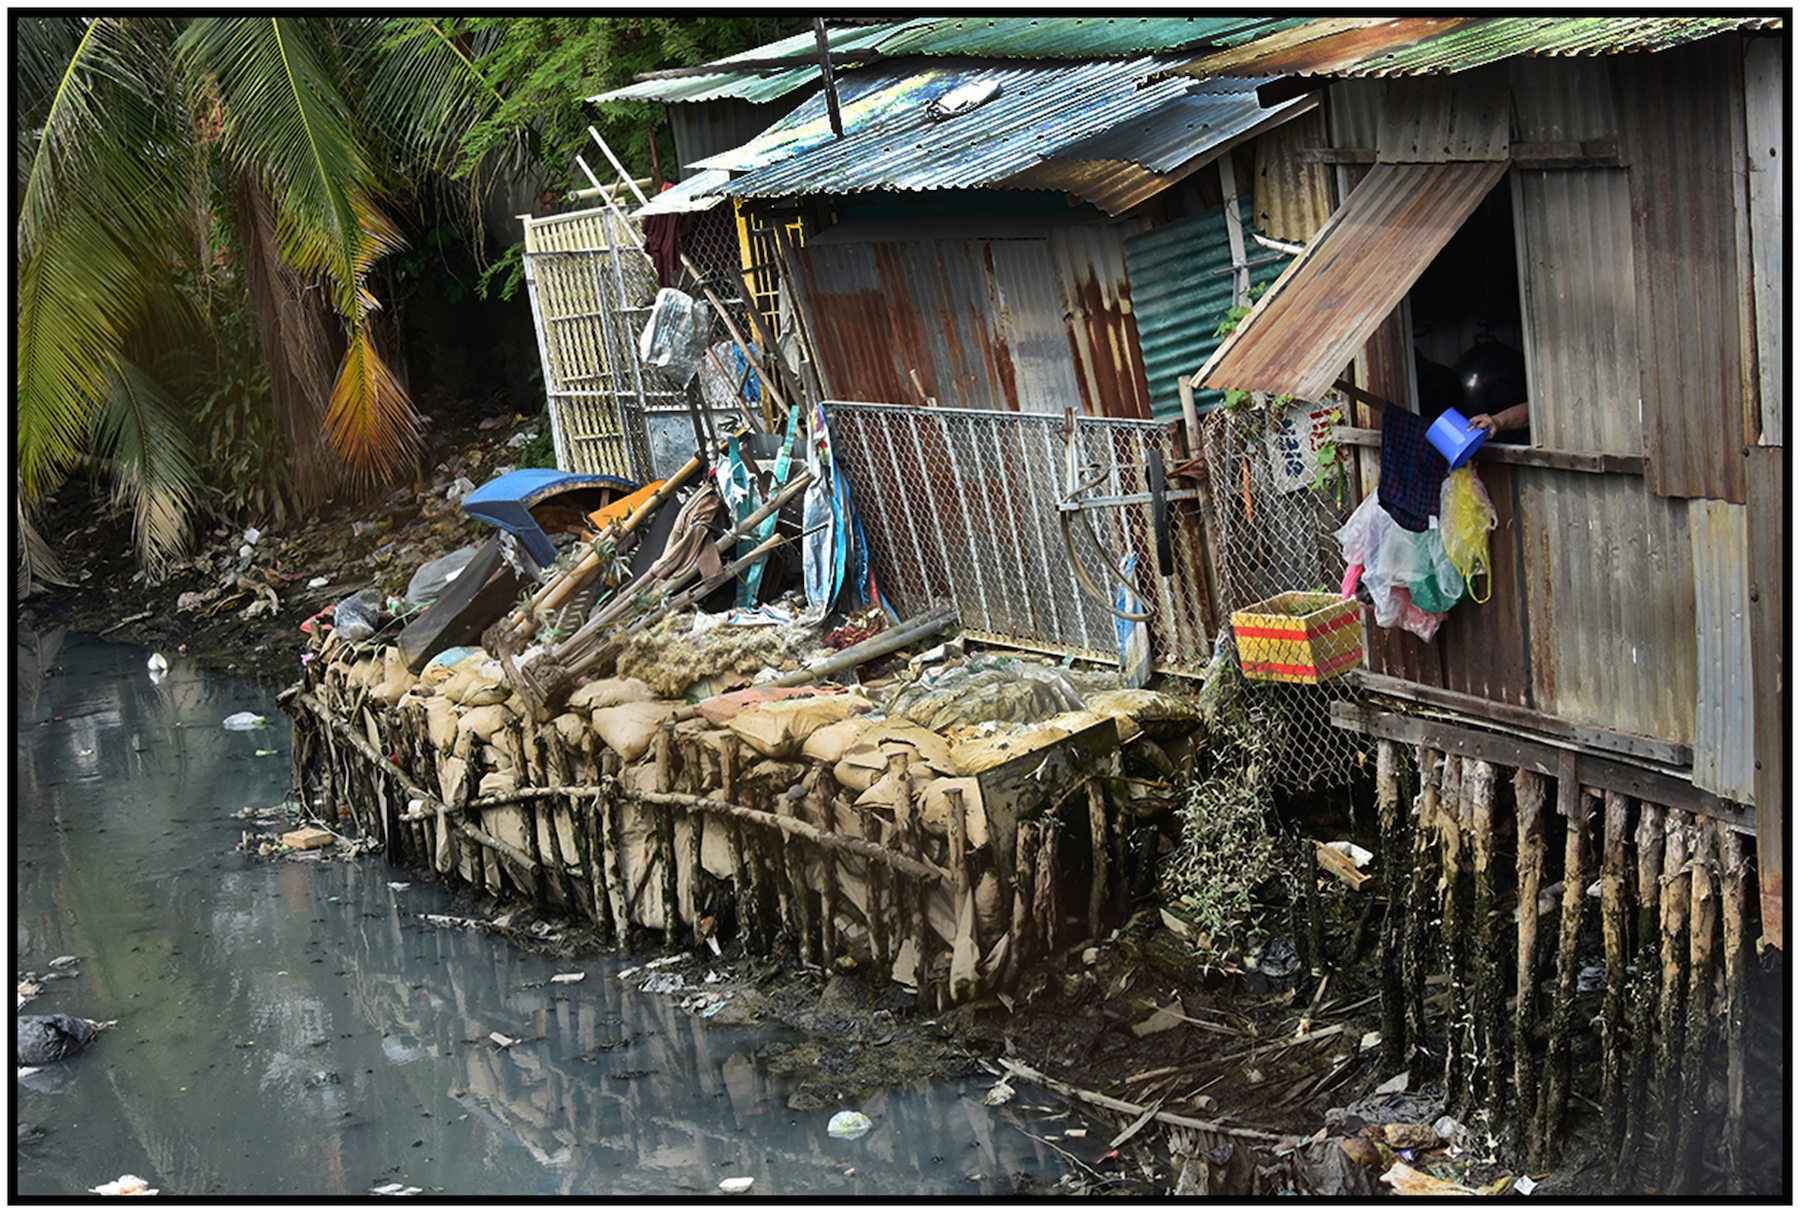 Housing for the poor on polluted canal, Saigo/HCMC, Dec. 2015. #4879